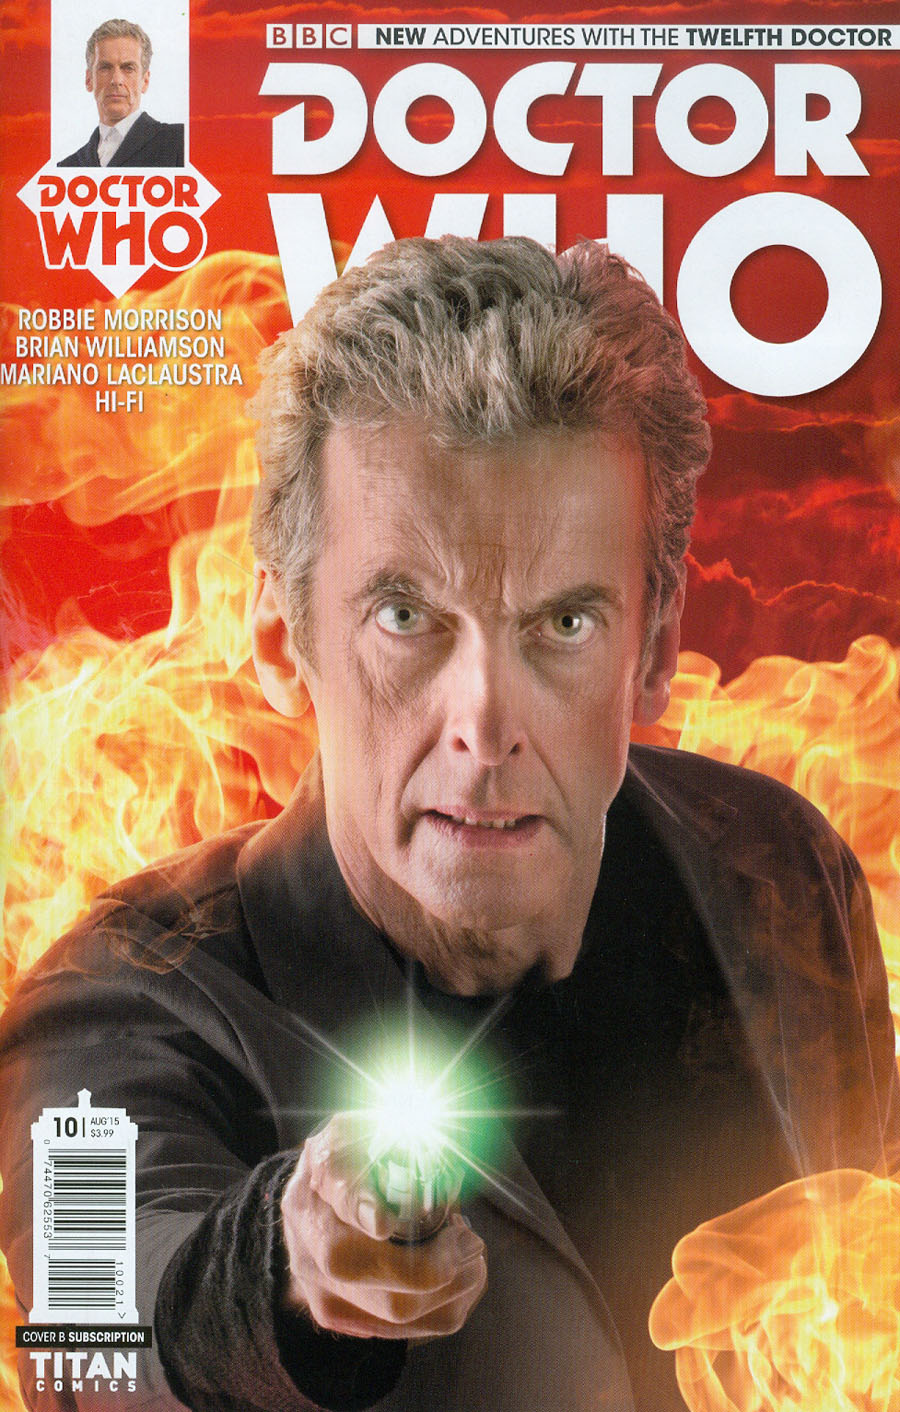 Doctor Who 12th Doctor #10 Cover B Variant Photo Subscription Cover